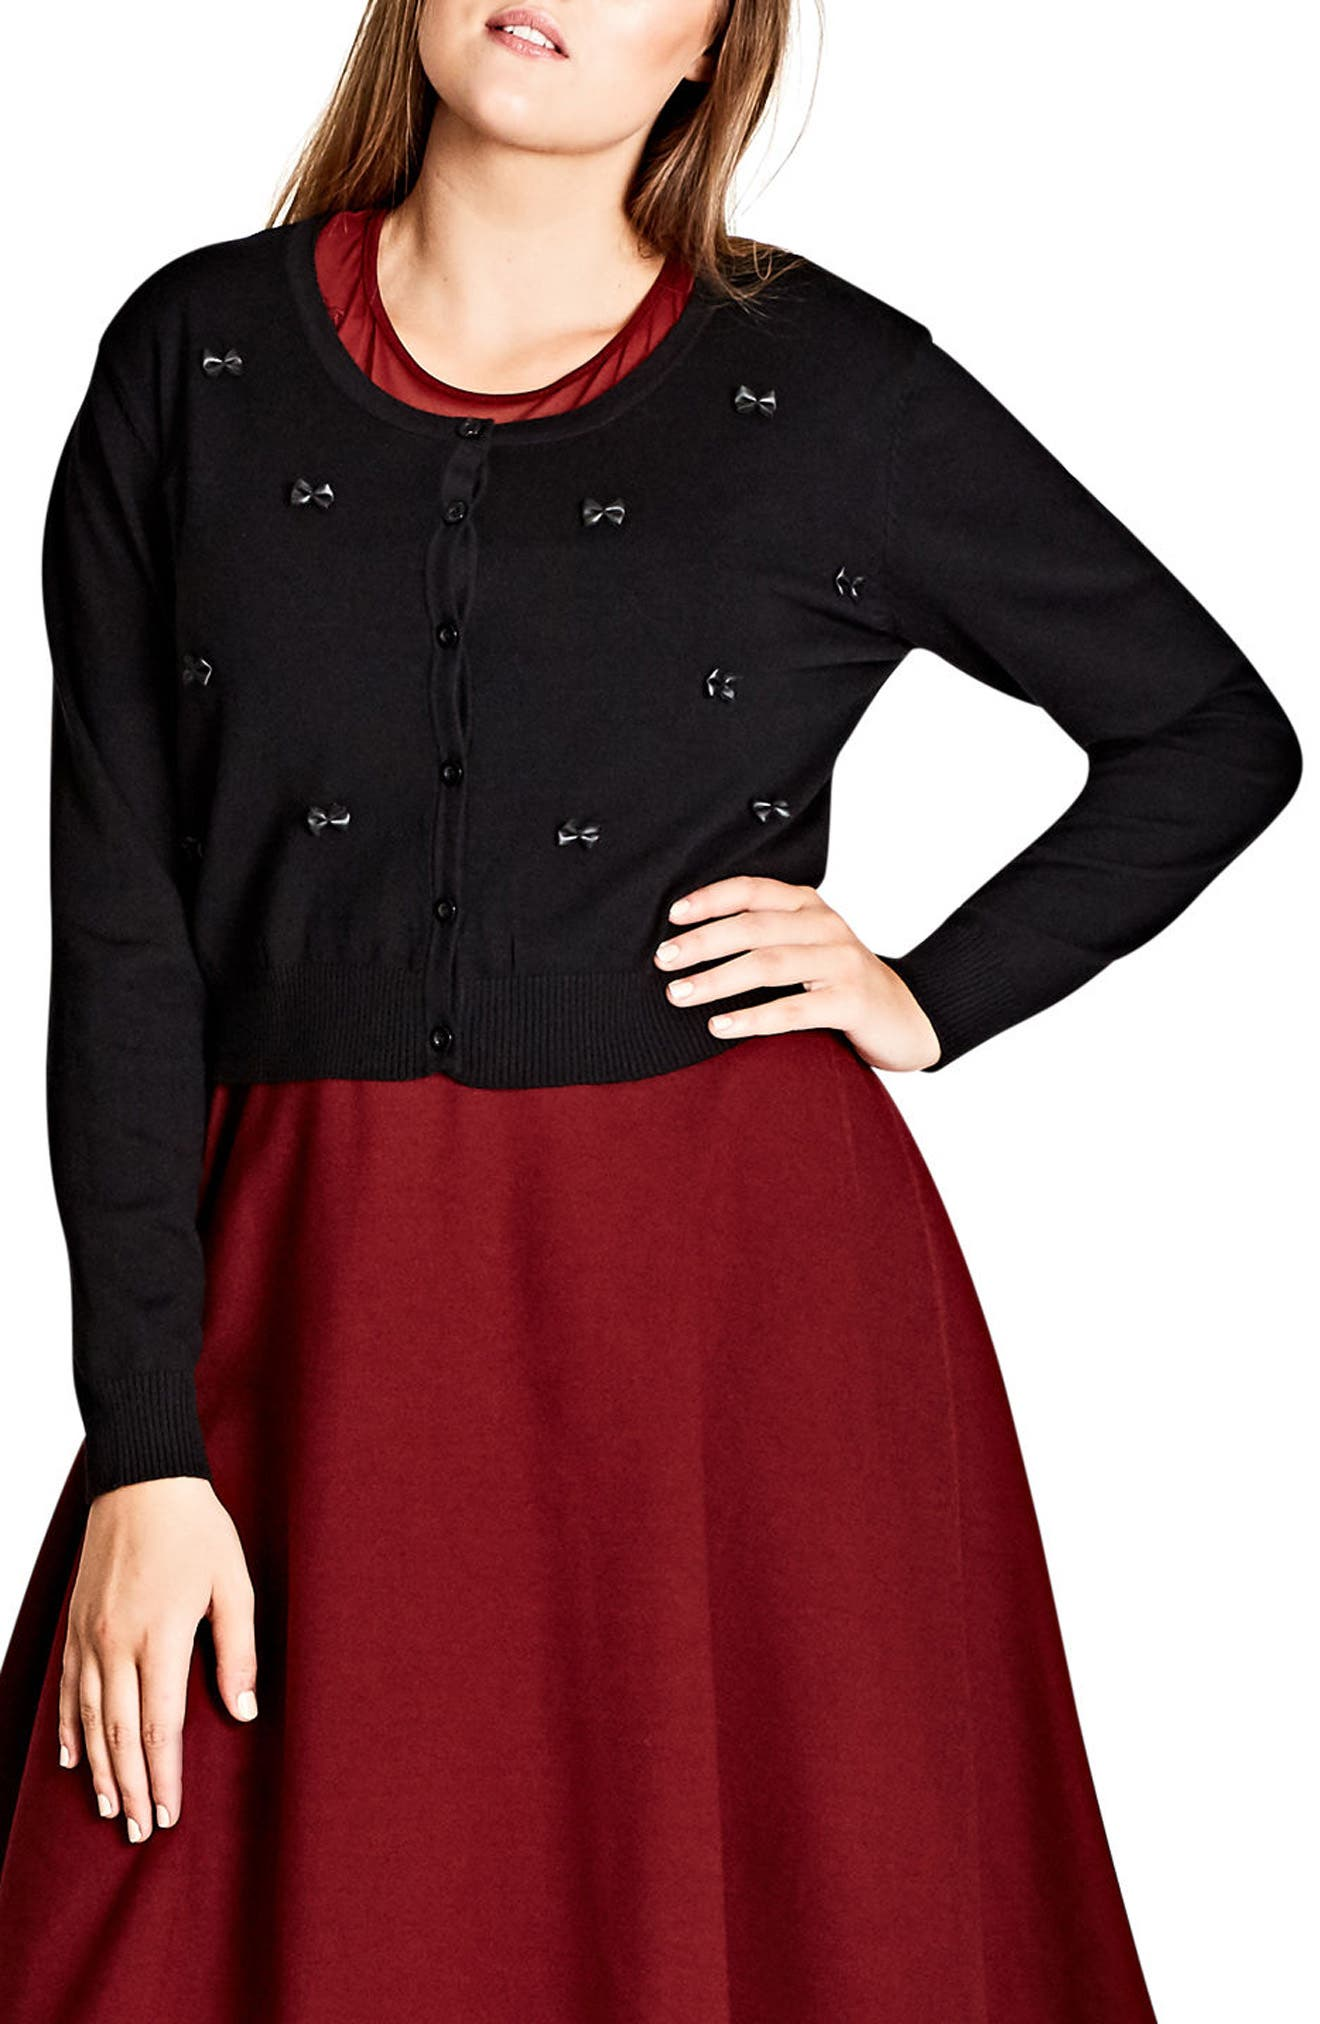 Main Image - City Chic Sweetie Bow Crop Cardigan (Plus Size)